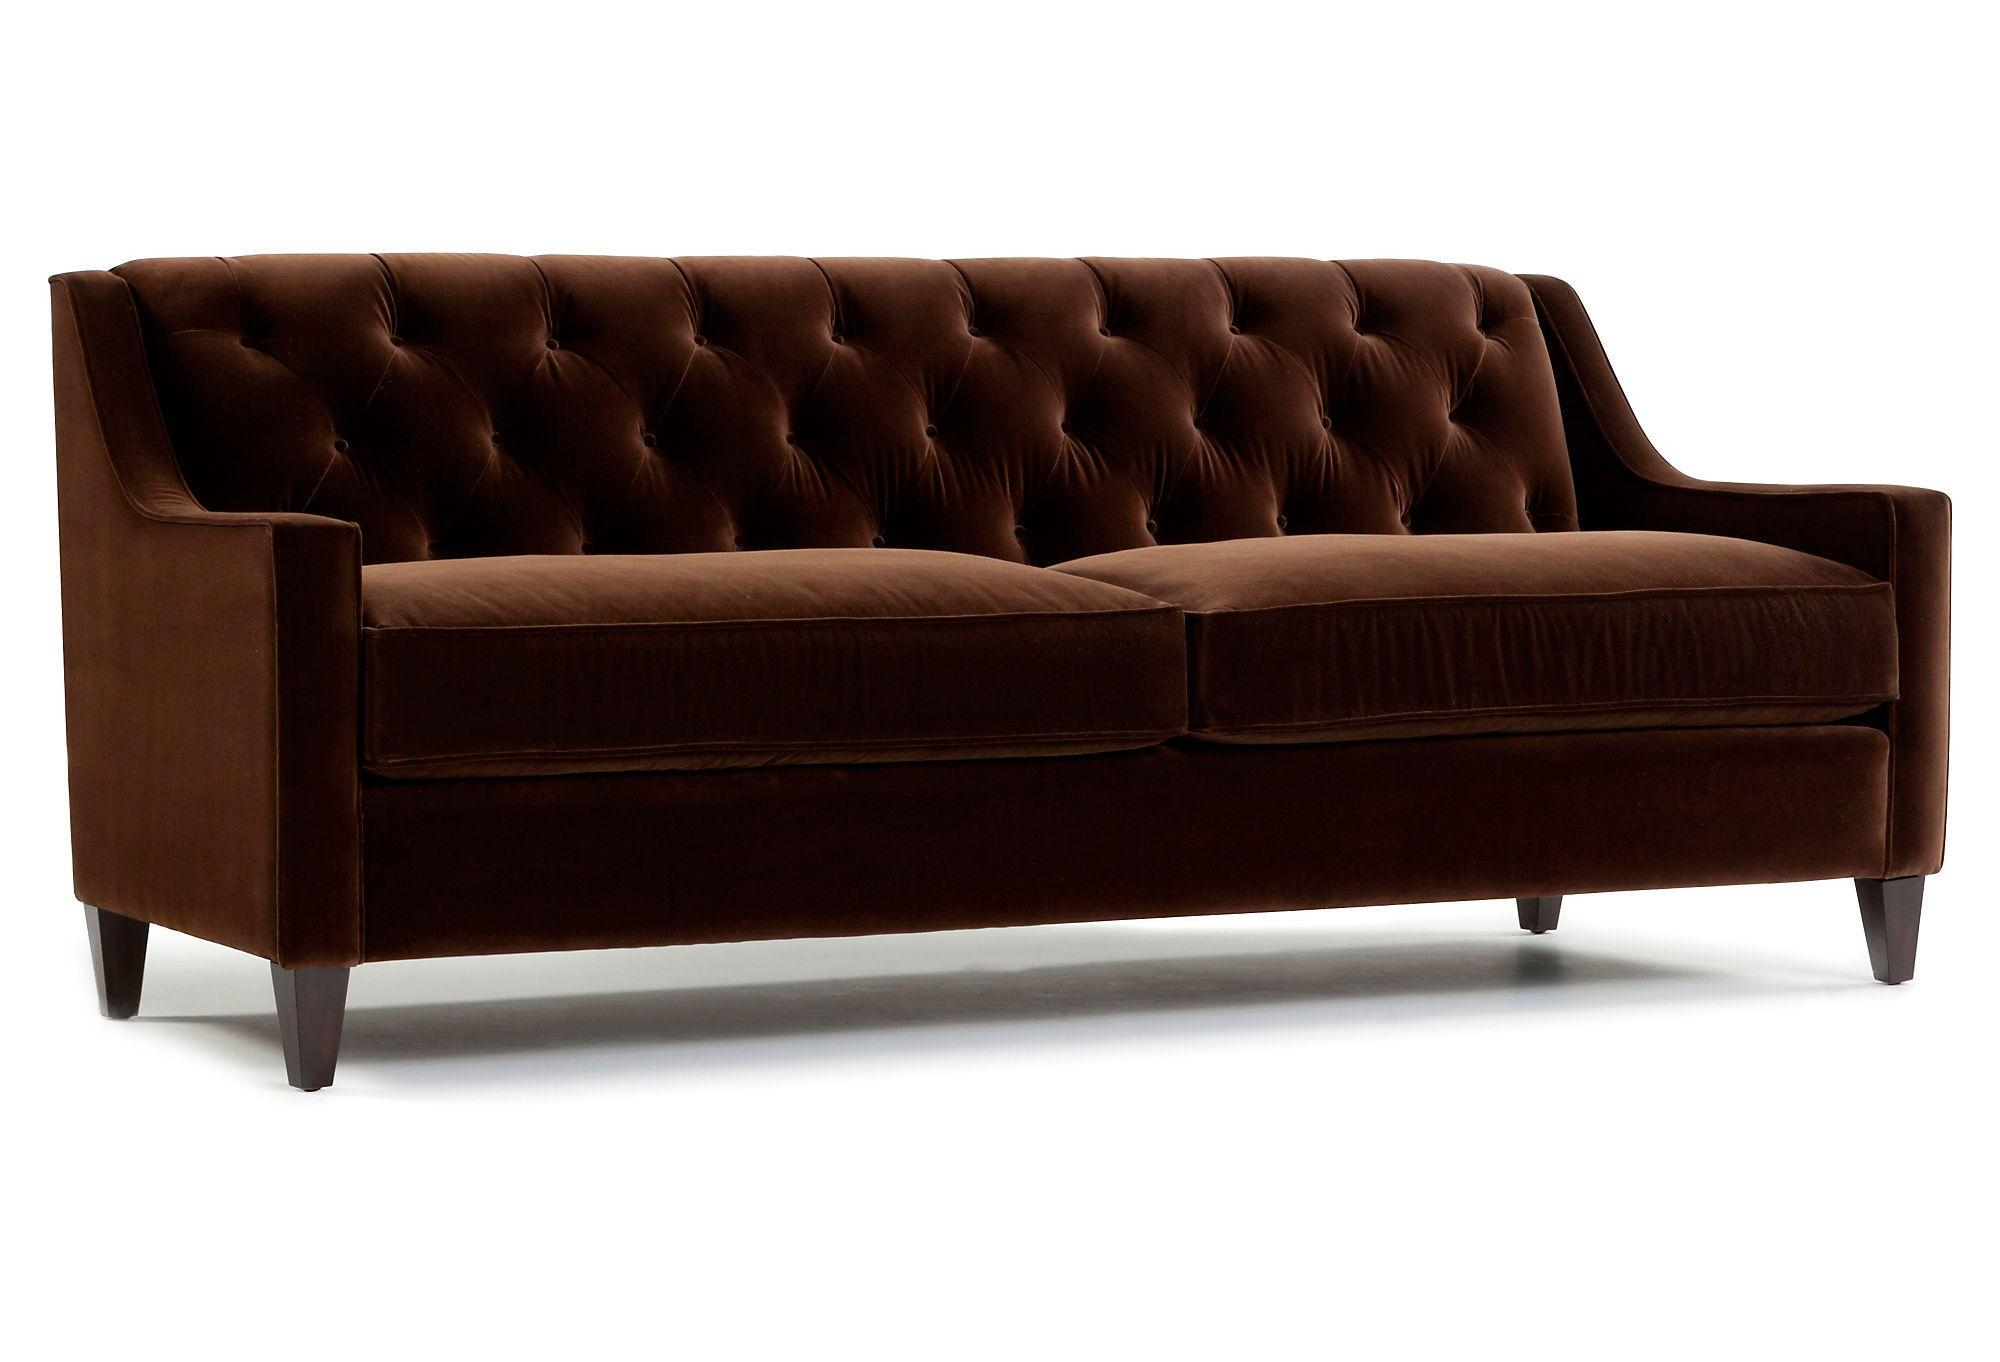 Brown Velvet Sofa | Sofa Gallery | Kengire With Regard To Brown Velvet Sofas (View 1 of 20)